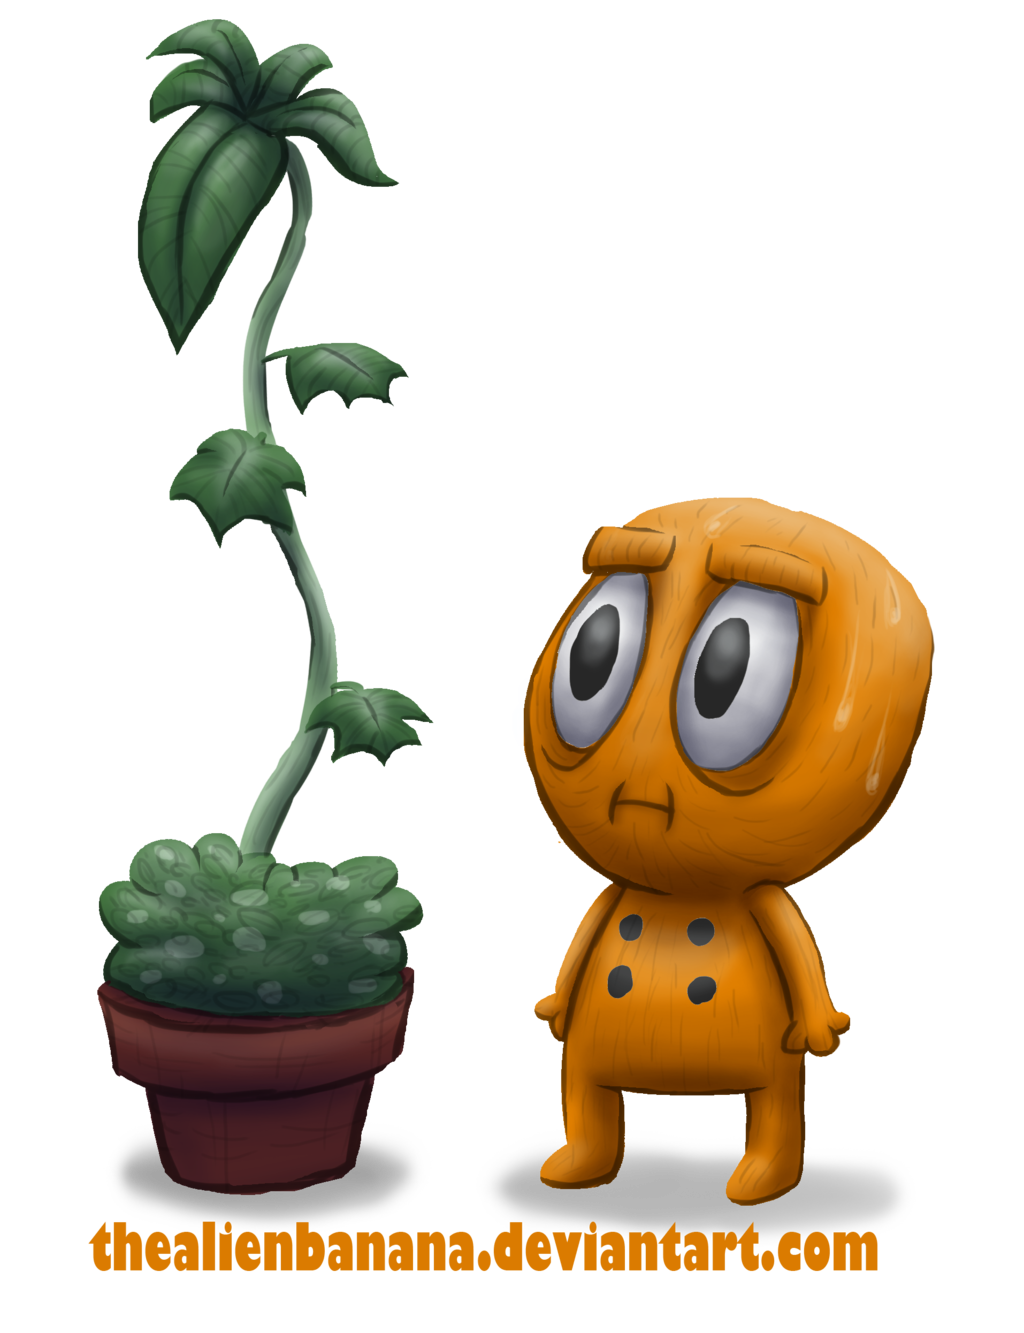 Ficus guy undertale by. Conversation clipart daily